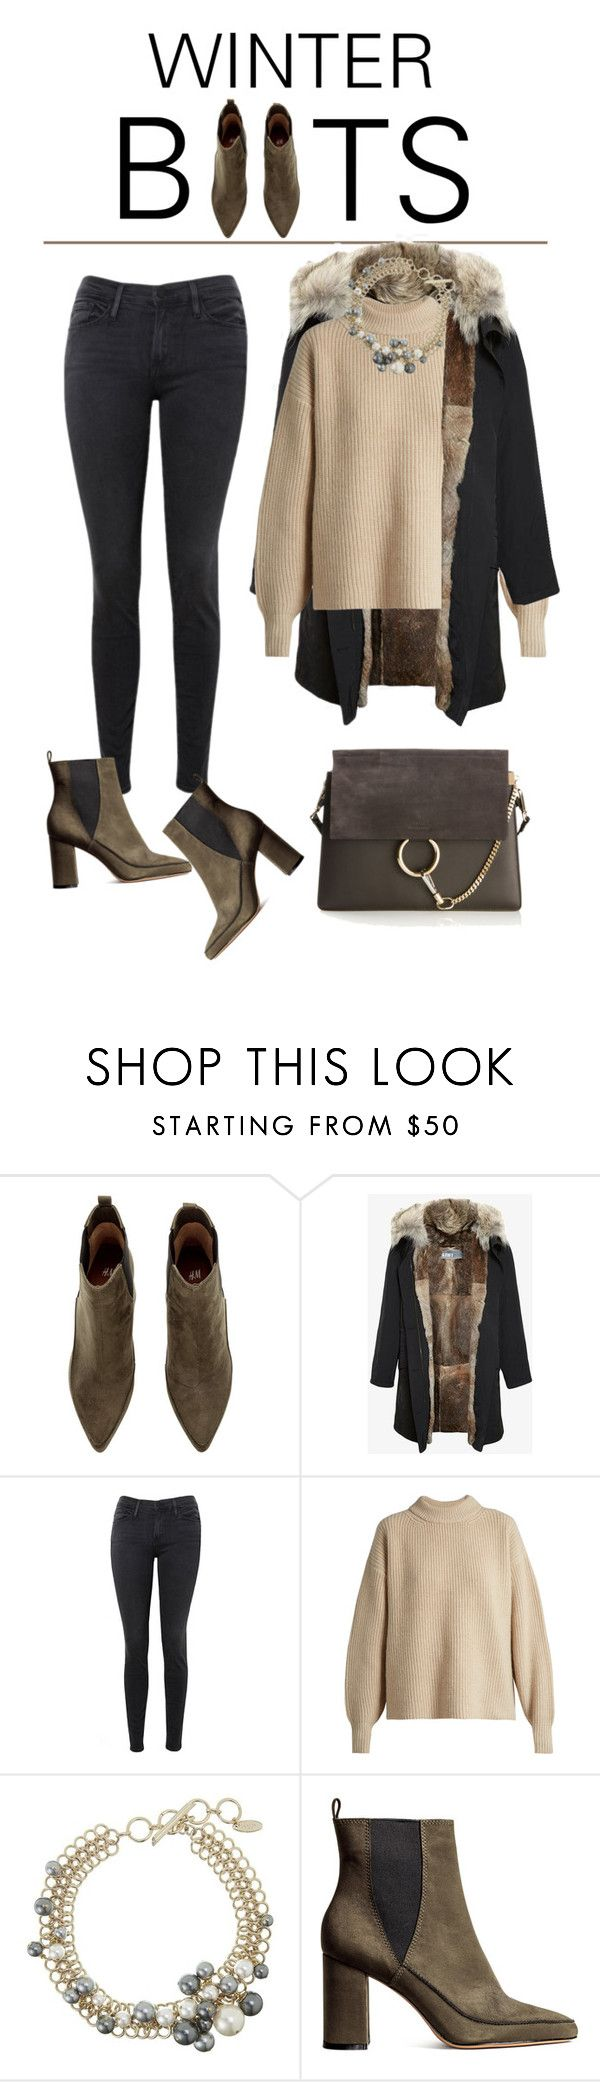 """""""winter boots"""" by melikeo on Polyvore featuring moda, Army Fur by Yves Salomon, Frame, The Row, Lanvin ve Chloé"""